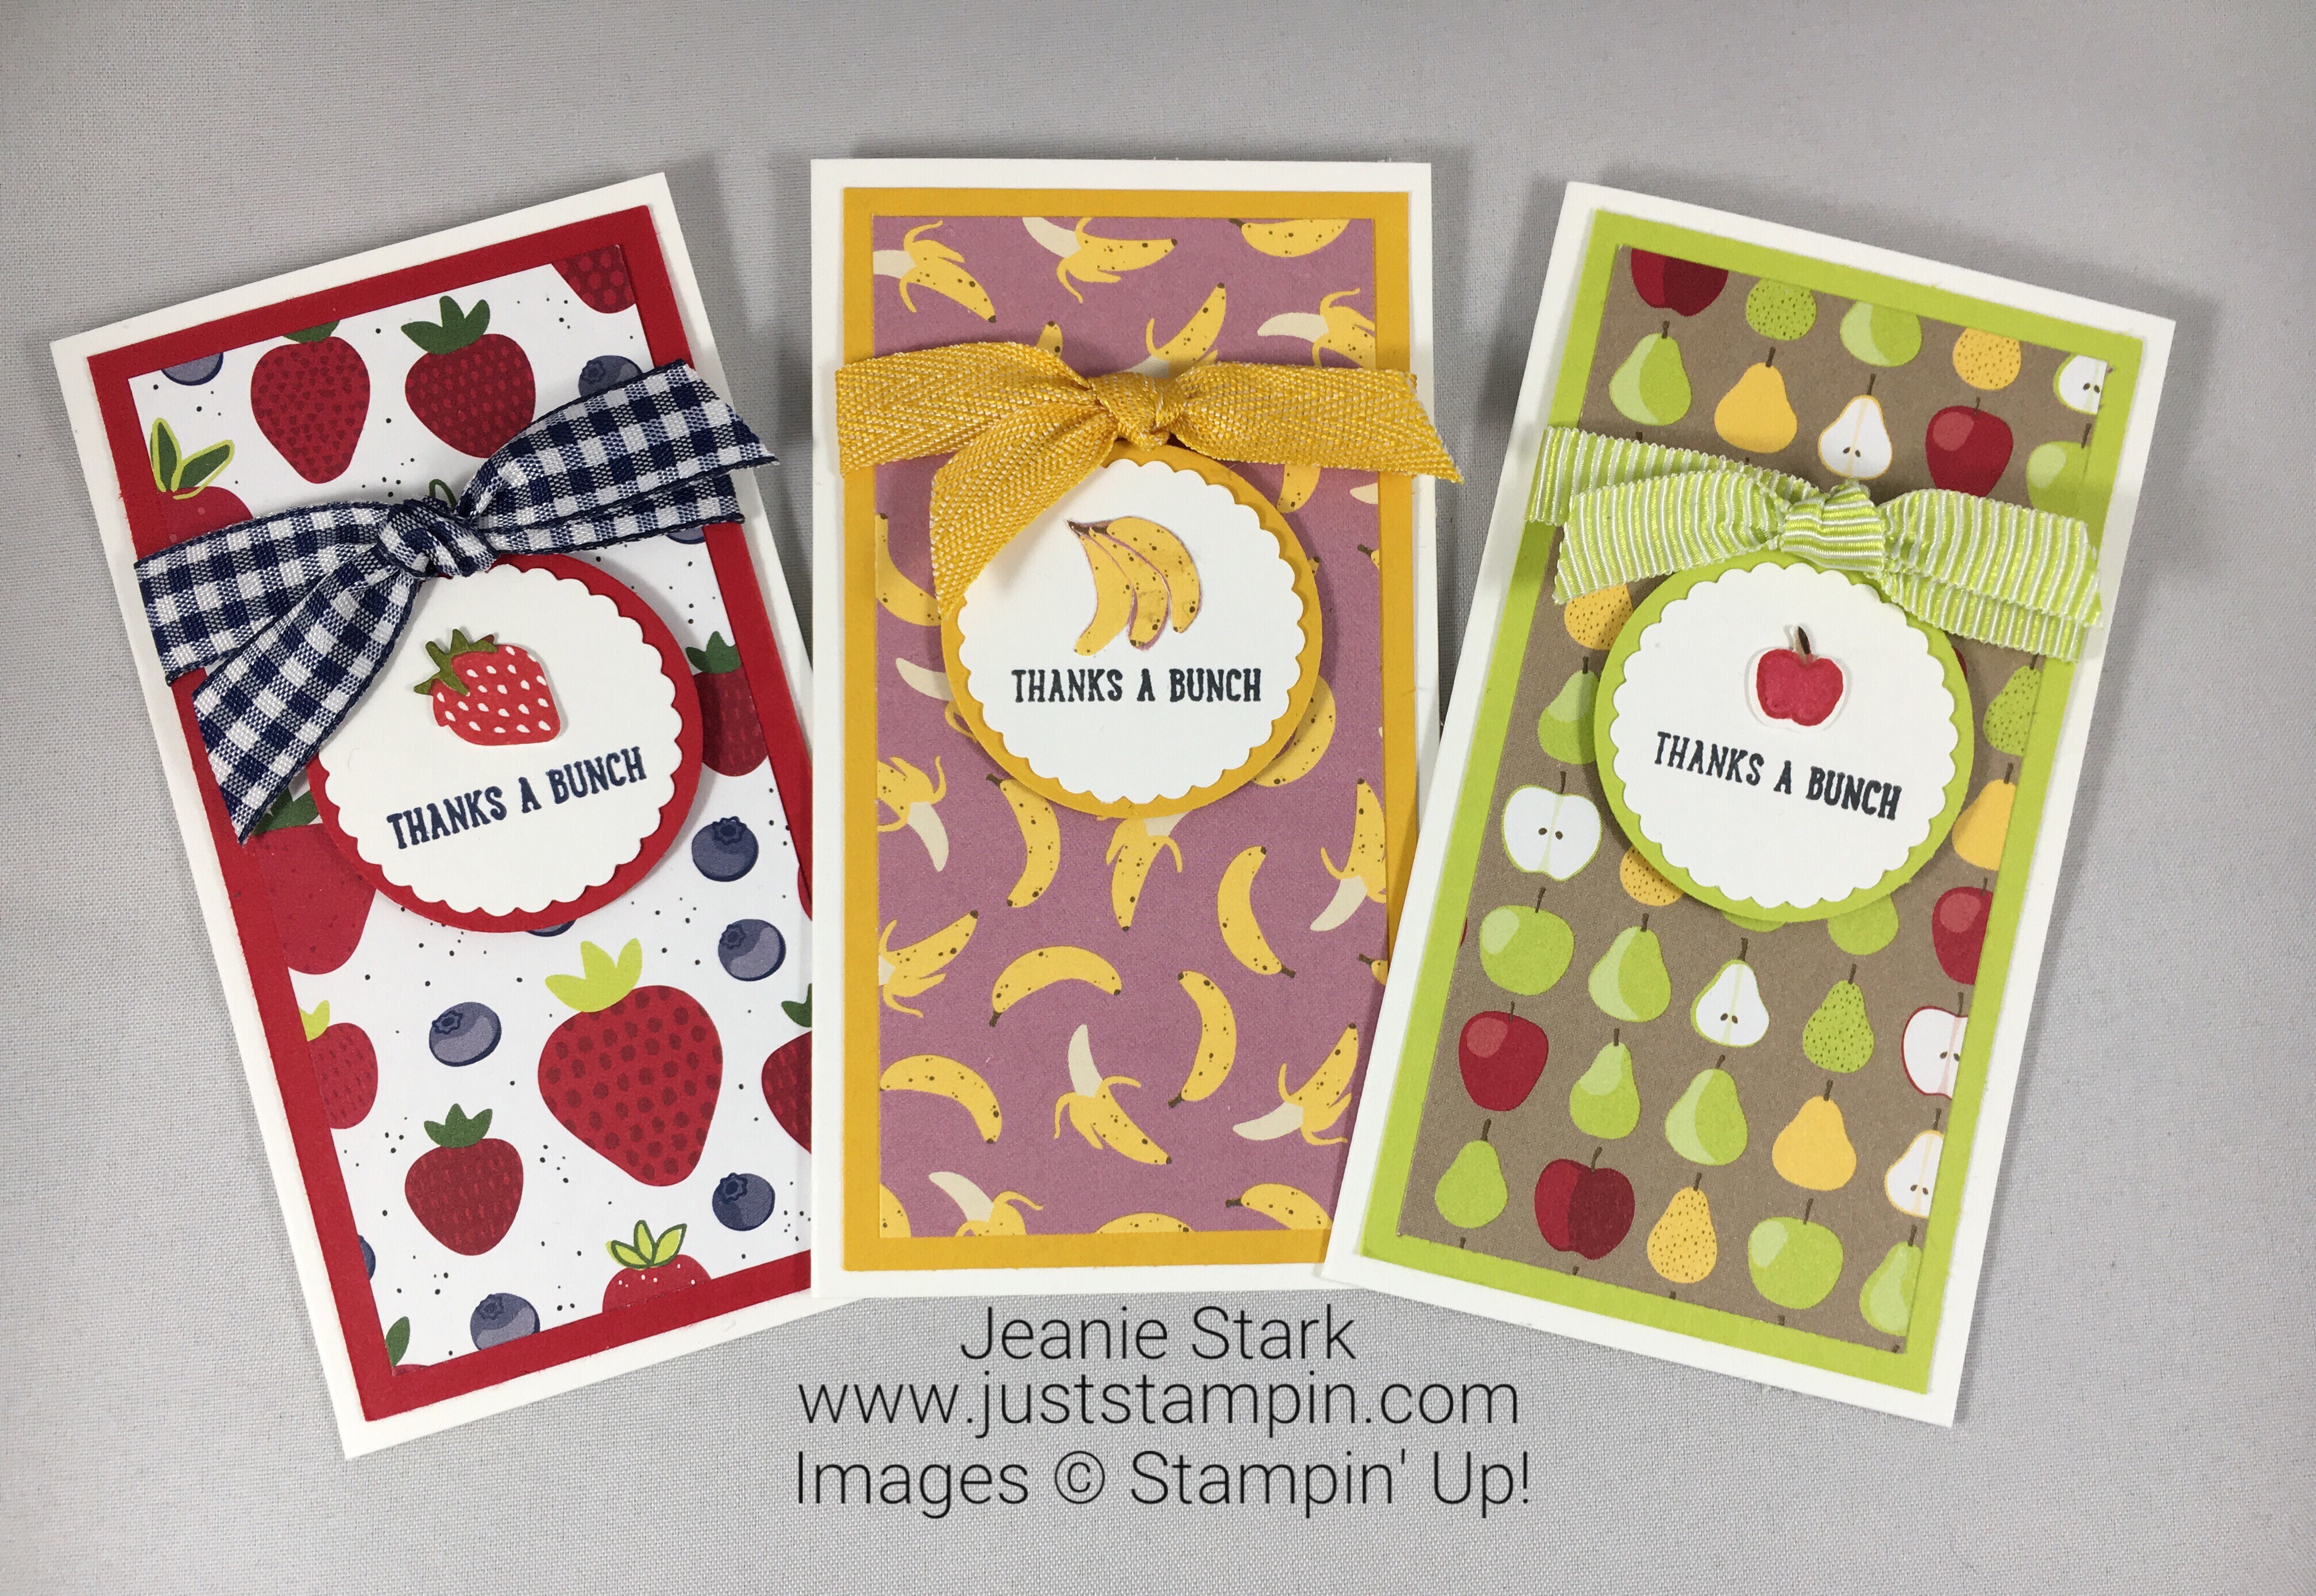 Stampin Up Thank you card ideas using Narrow Note Cards and Tutti-frutti Designer Series Paper - Jeanie Stark StampinUp